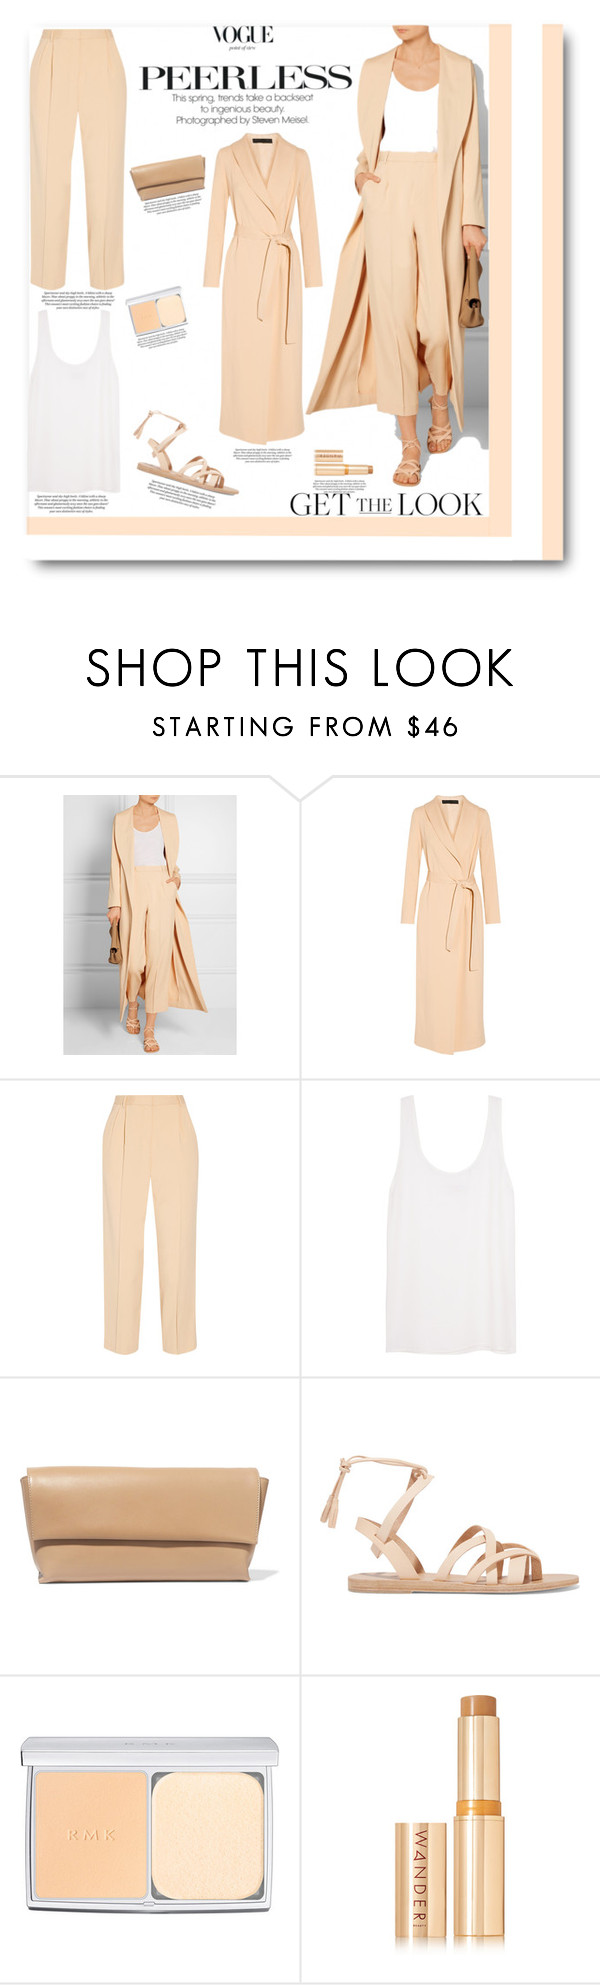 """""""fashion-and- beauty -miracles """"78"""" by fashion-and-beauty-miracles ❤ liked on Polyvore featuring The Row, Equipment, Valia Gabriel, RMK, Wander Beauty, women's clothing, women, female, woman and misses"""